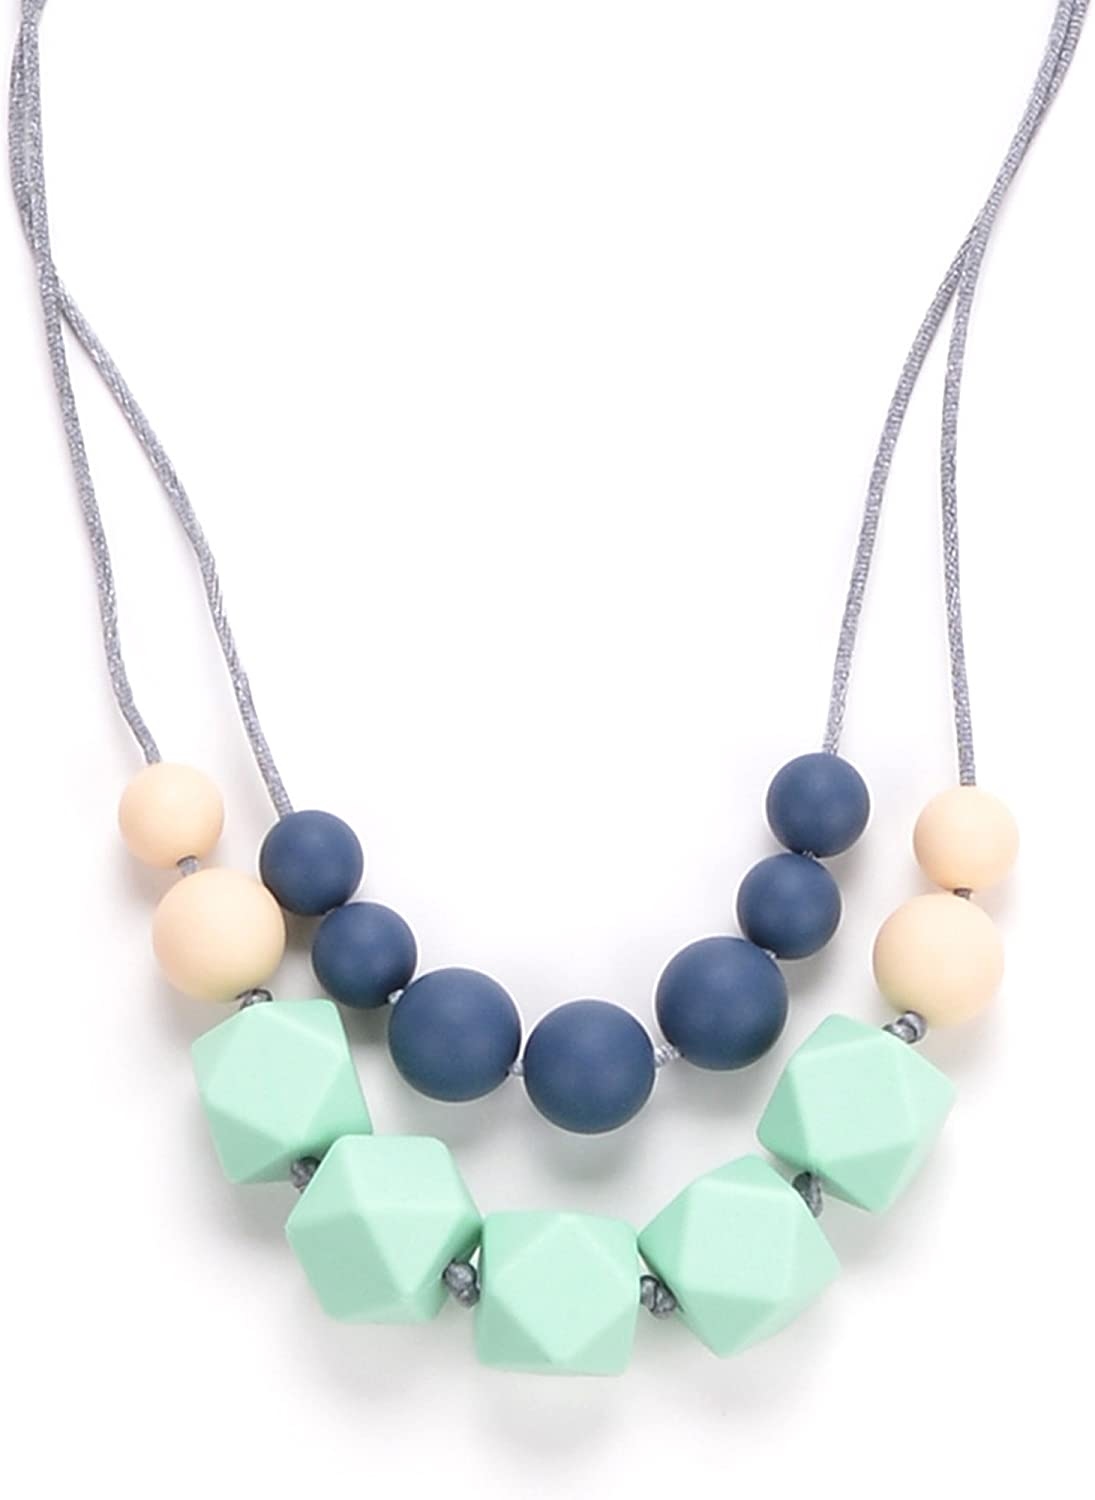 Top 8 Best Teething Necklace For Mom (2020 Reviews & Buying Guide) 3